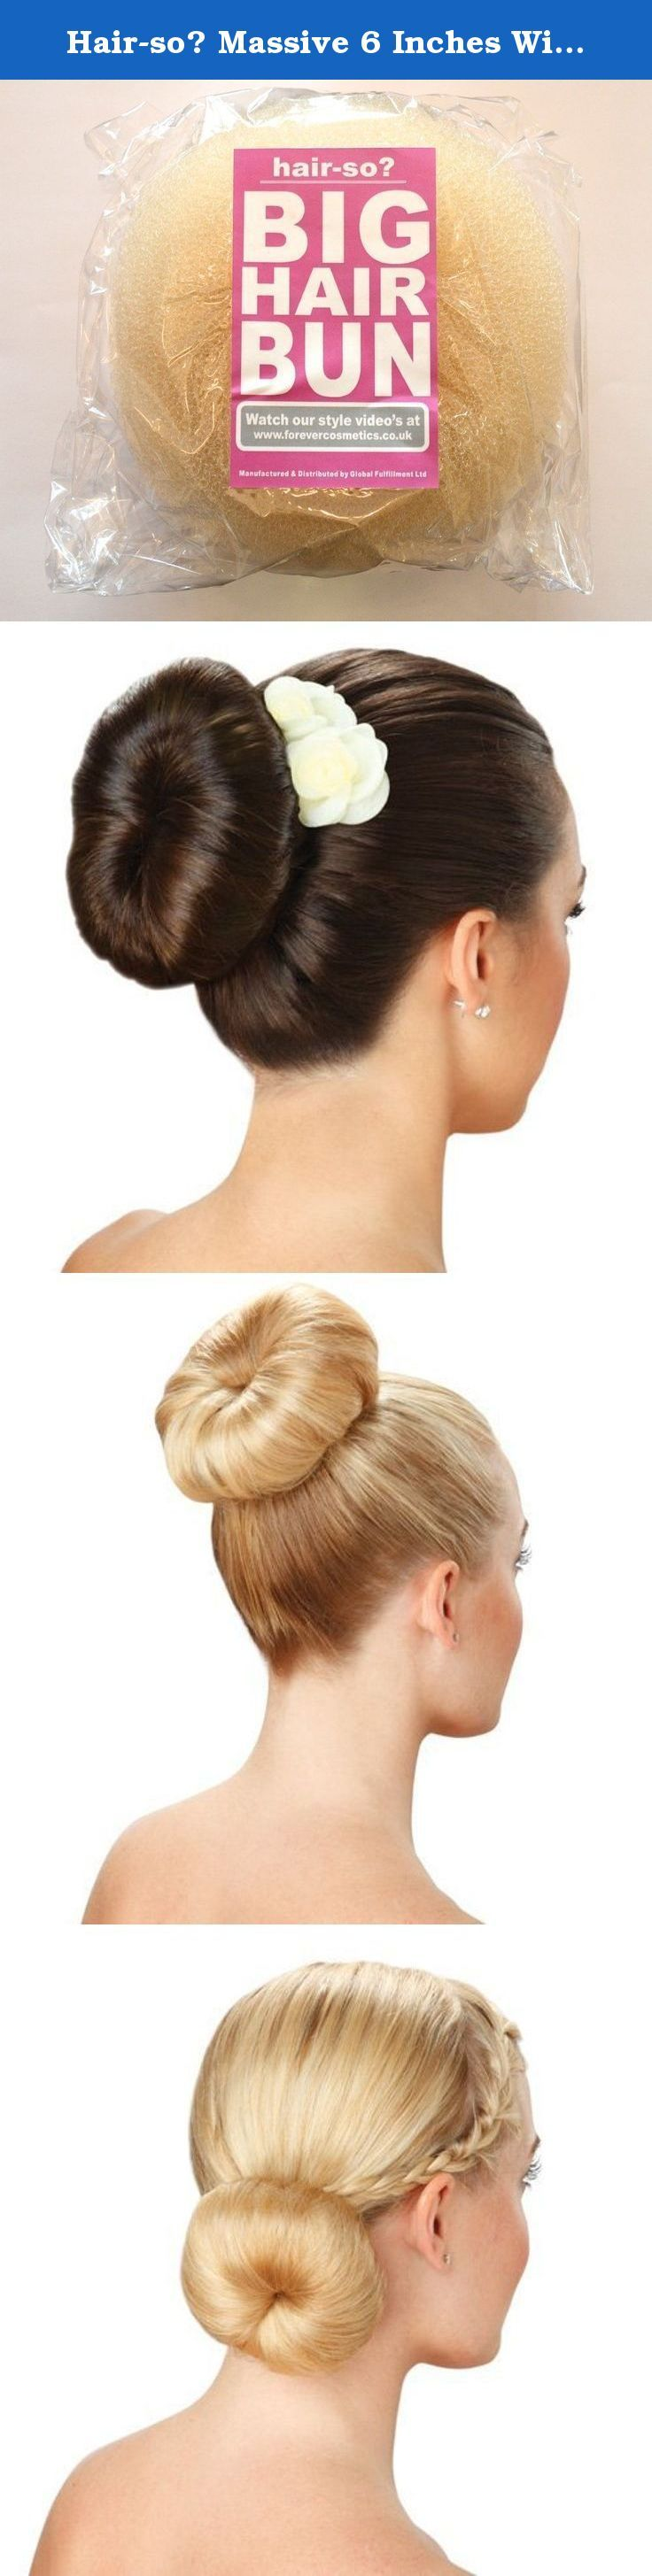 Hair-so? Massive 6 Inches Wide Big Hair Bun Extra Large Hair Doughnut Donut Bridal Wedding Hollywood Hair Style Bun Ring - Choose Colour- Brown, Black or Blonde (Blonde). With the Unrivalled Massive 6 Inch Wide BIG HAIR BUN by hair-so? you can get a glamorous updo in minutes. This trend is hugely popular with celebrities like Amy Childs and now you can easily get the look at home. Simply tie your hair up in a ponytail, place this bun ring around it and then pin the hair over for instant...